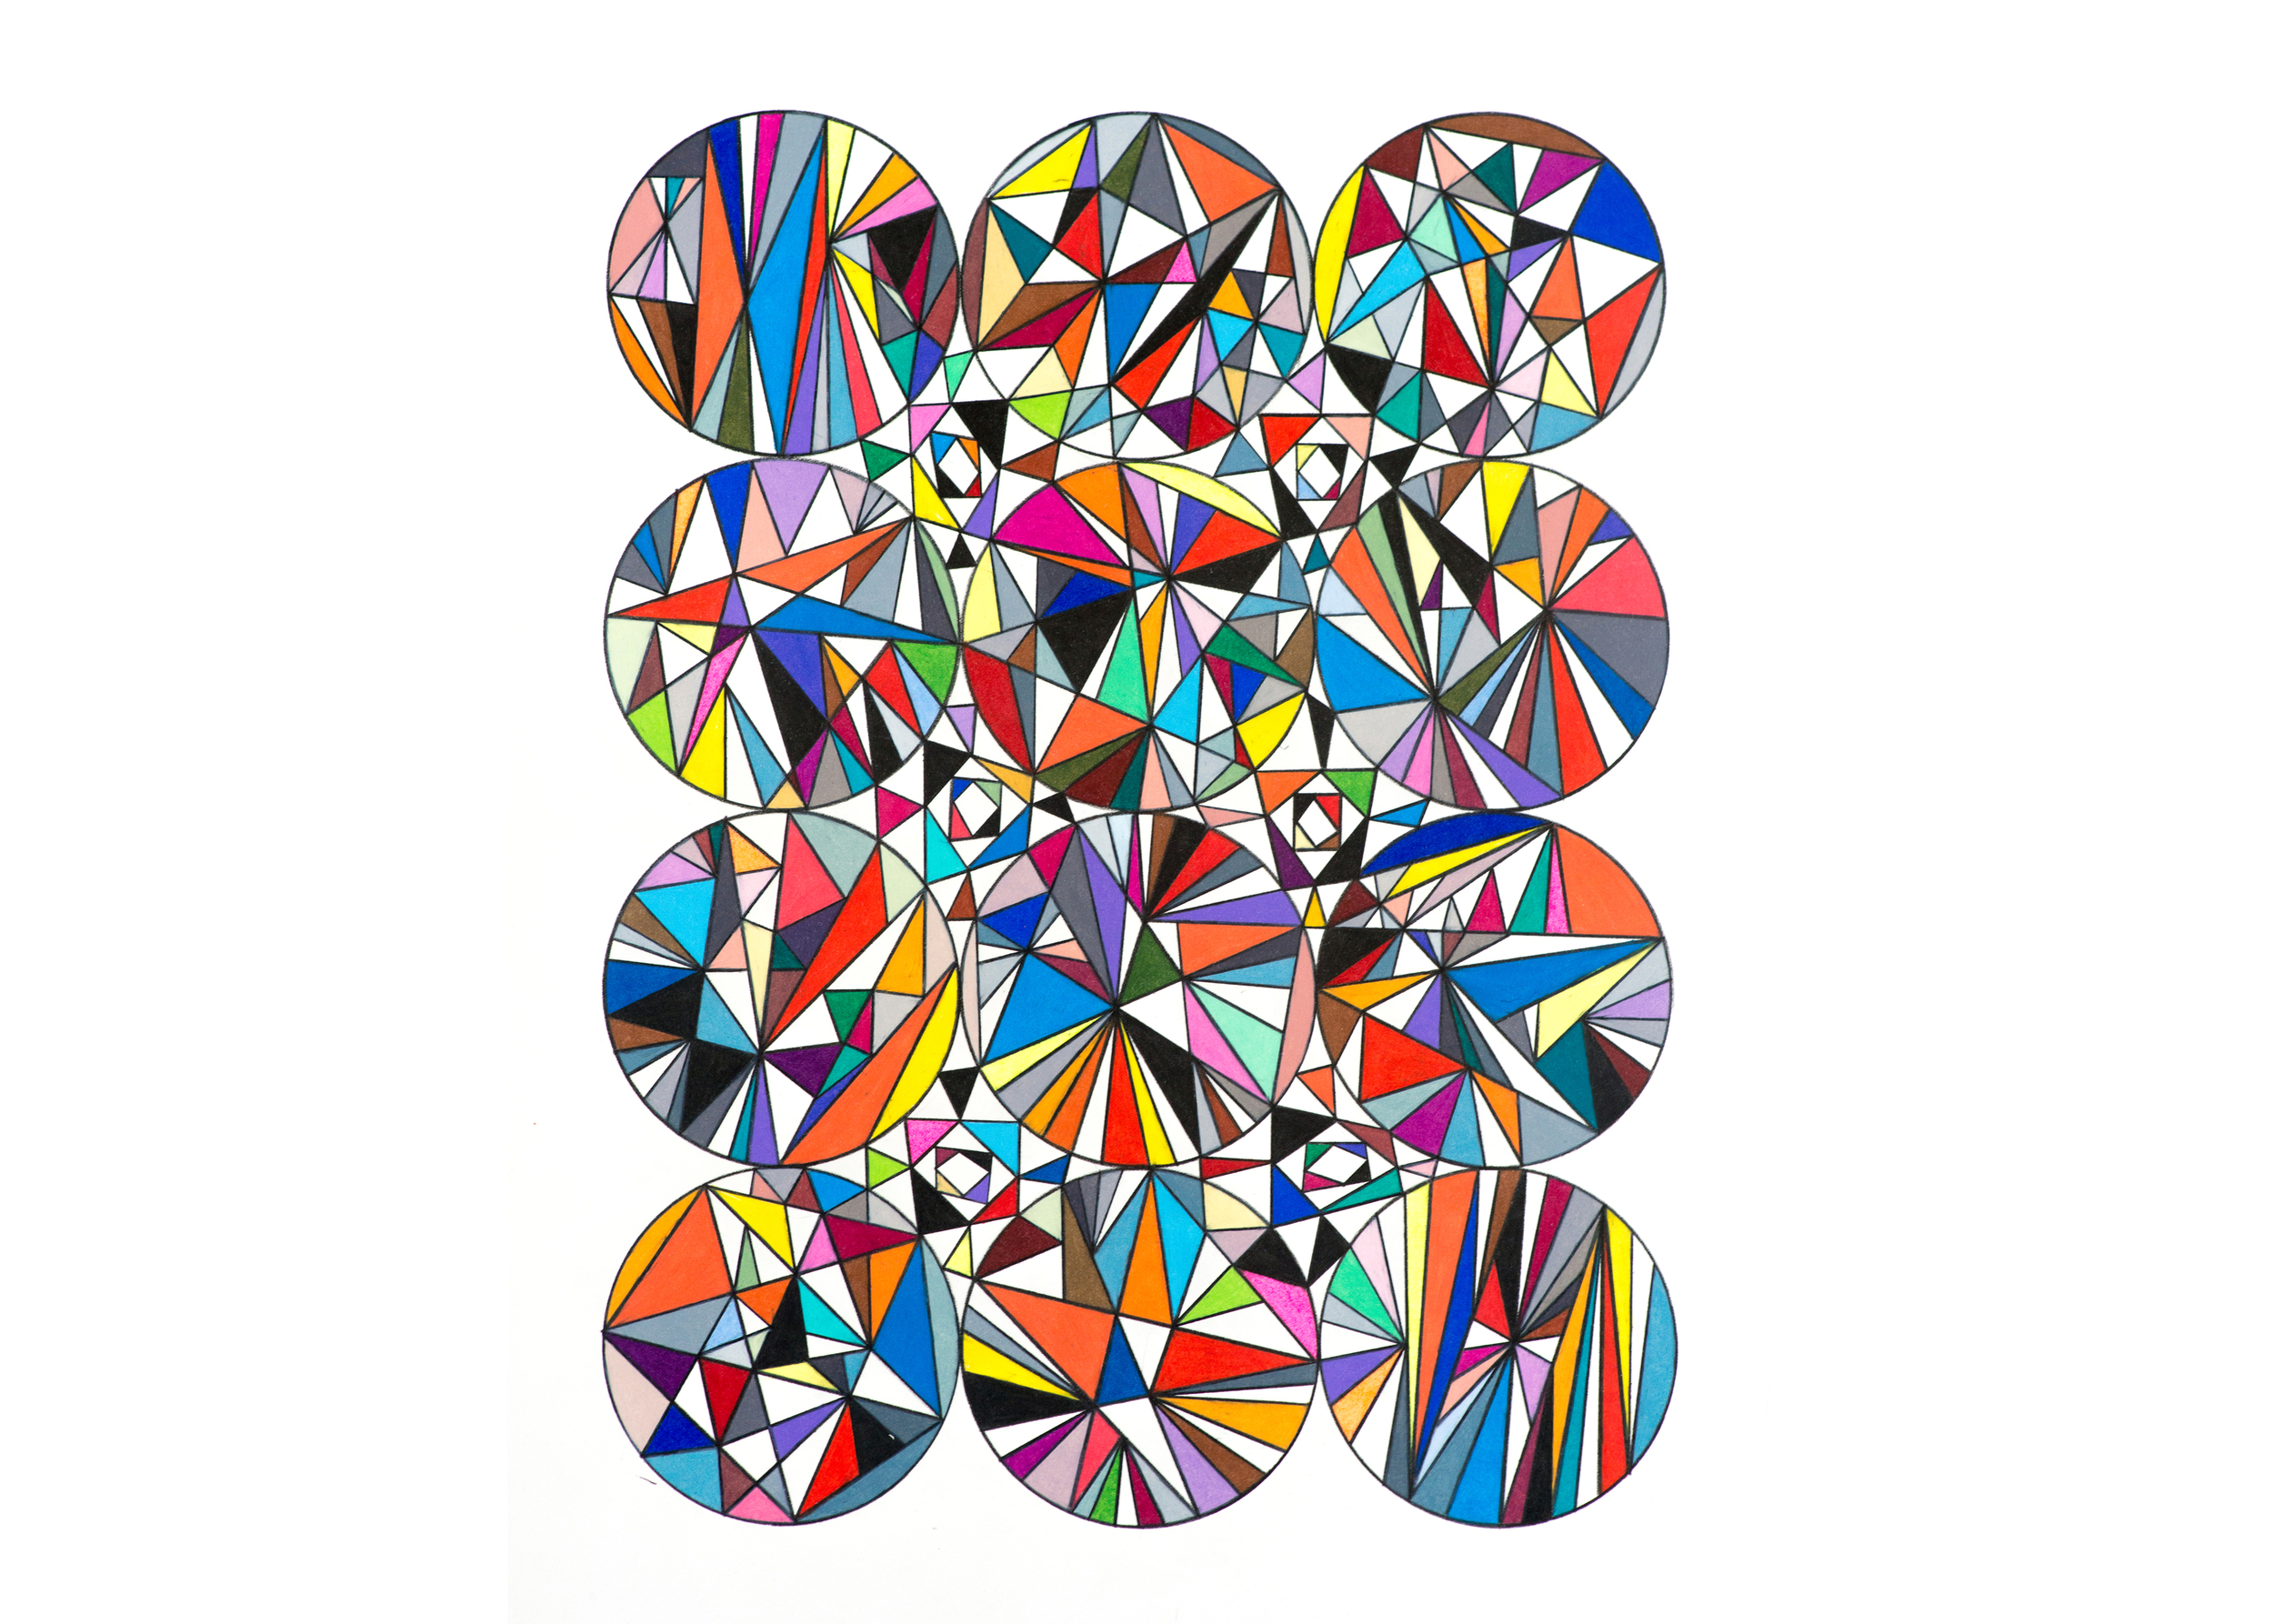 Versor Parallel (Physical Template in Twleve Spheres), 2013, colored pencil on paper, 22 x 16 in.